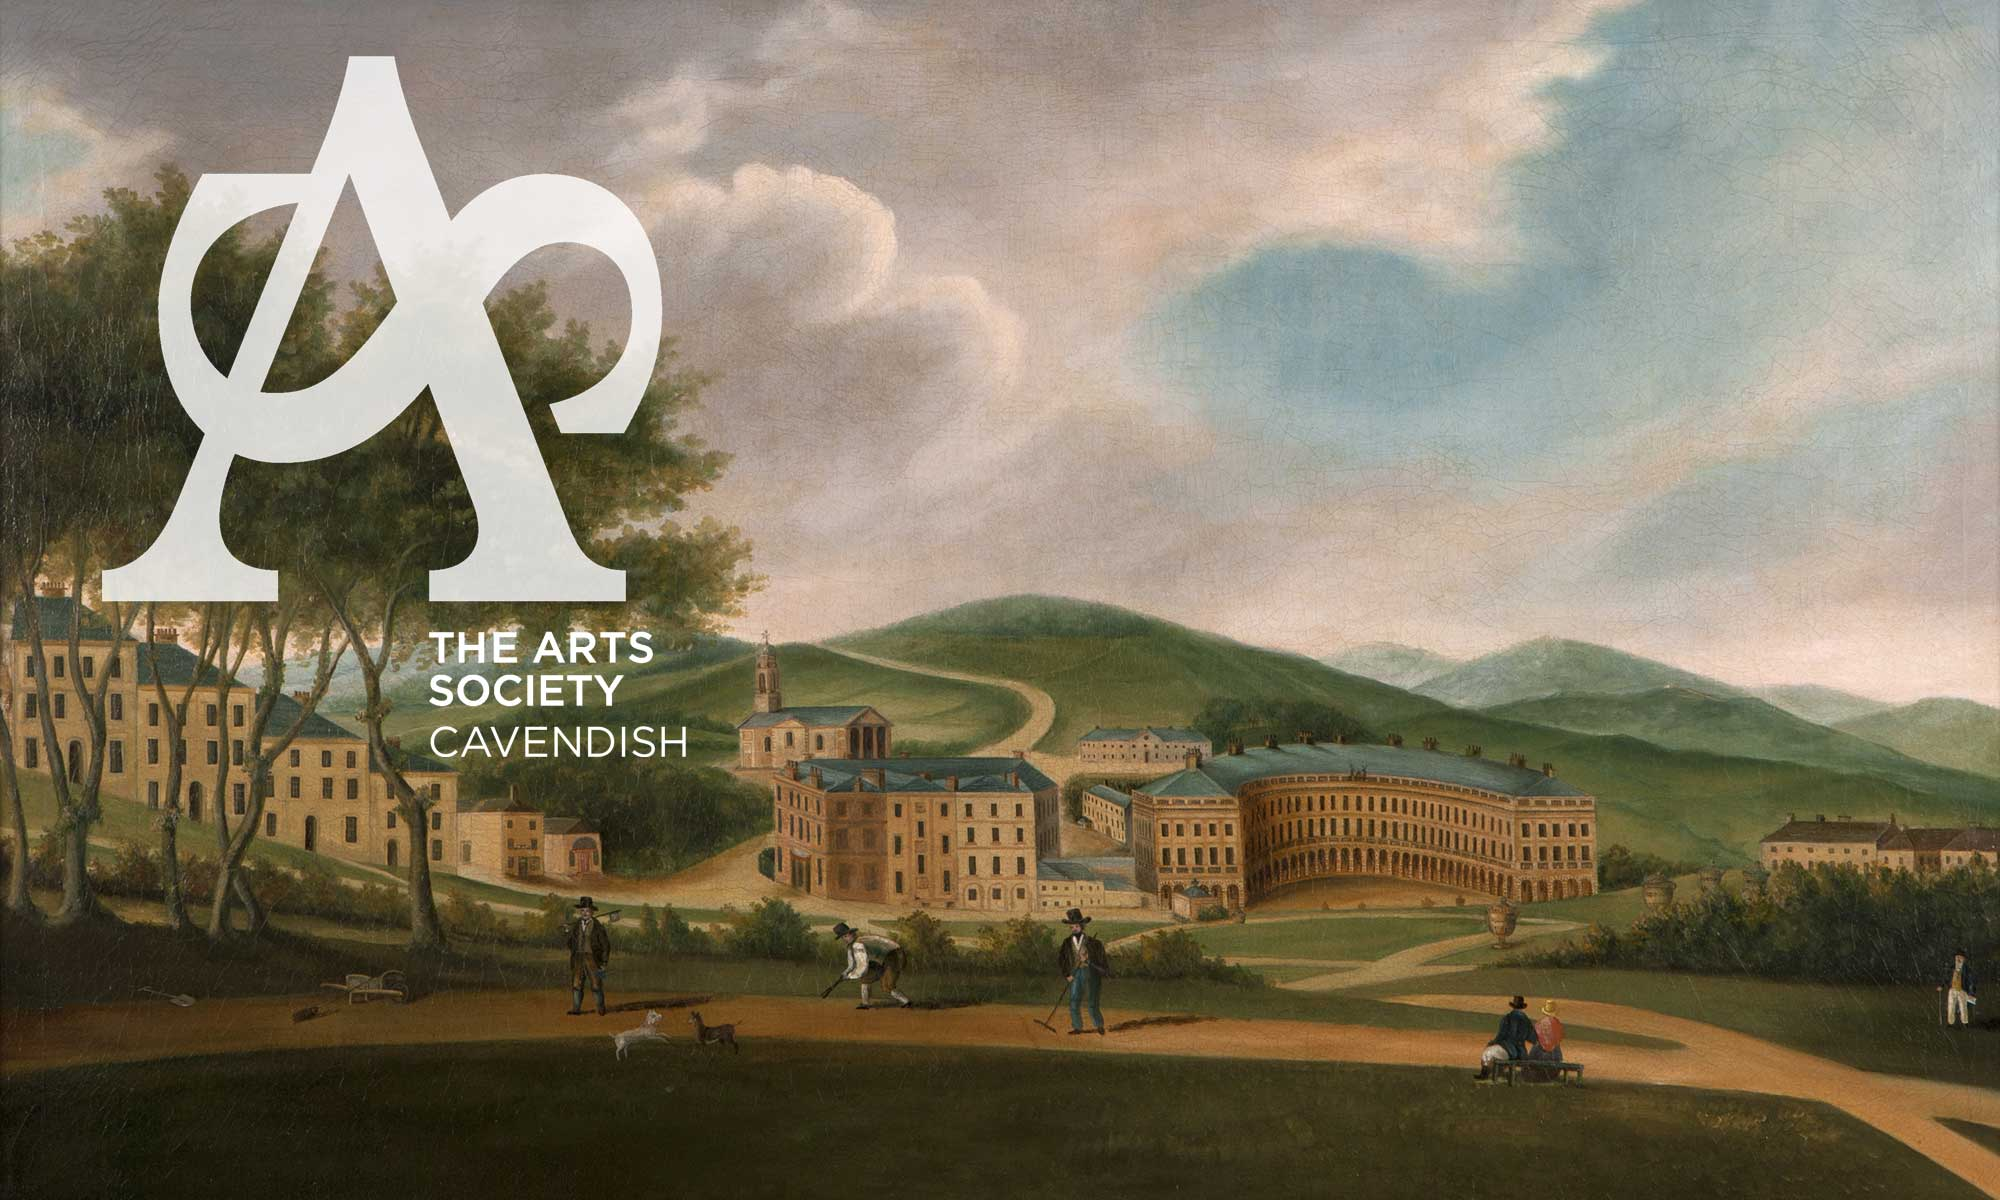 Arts Society Cavendish